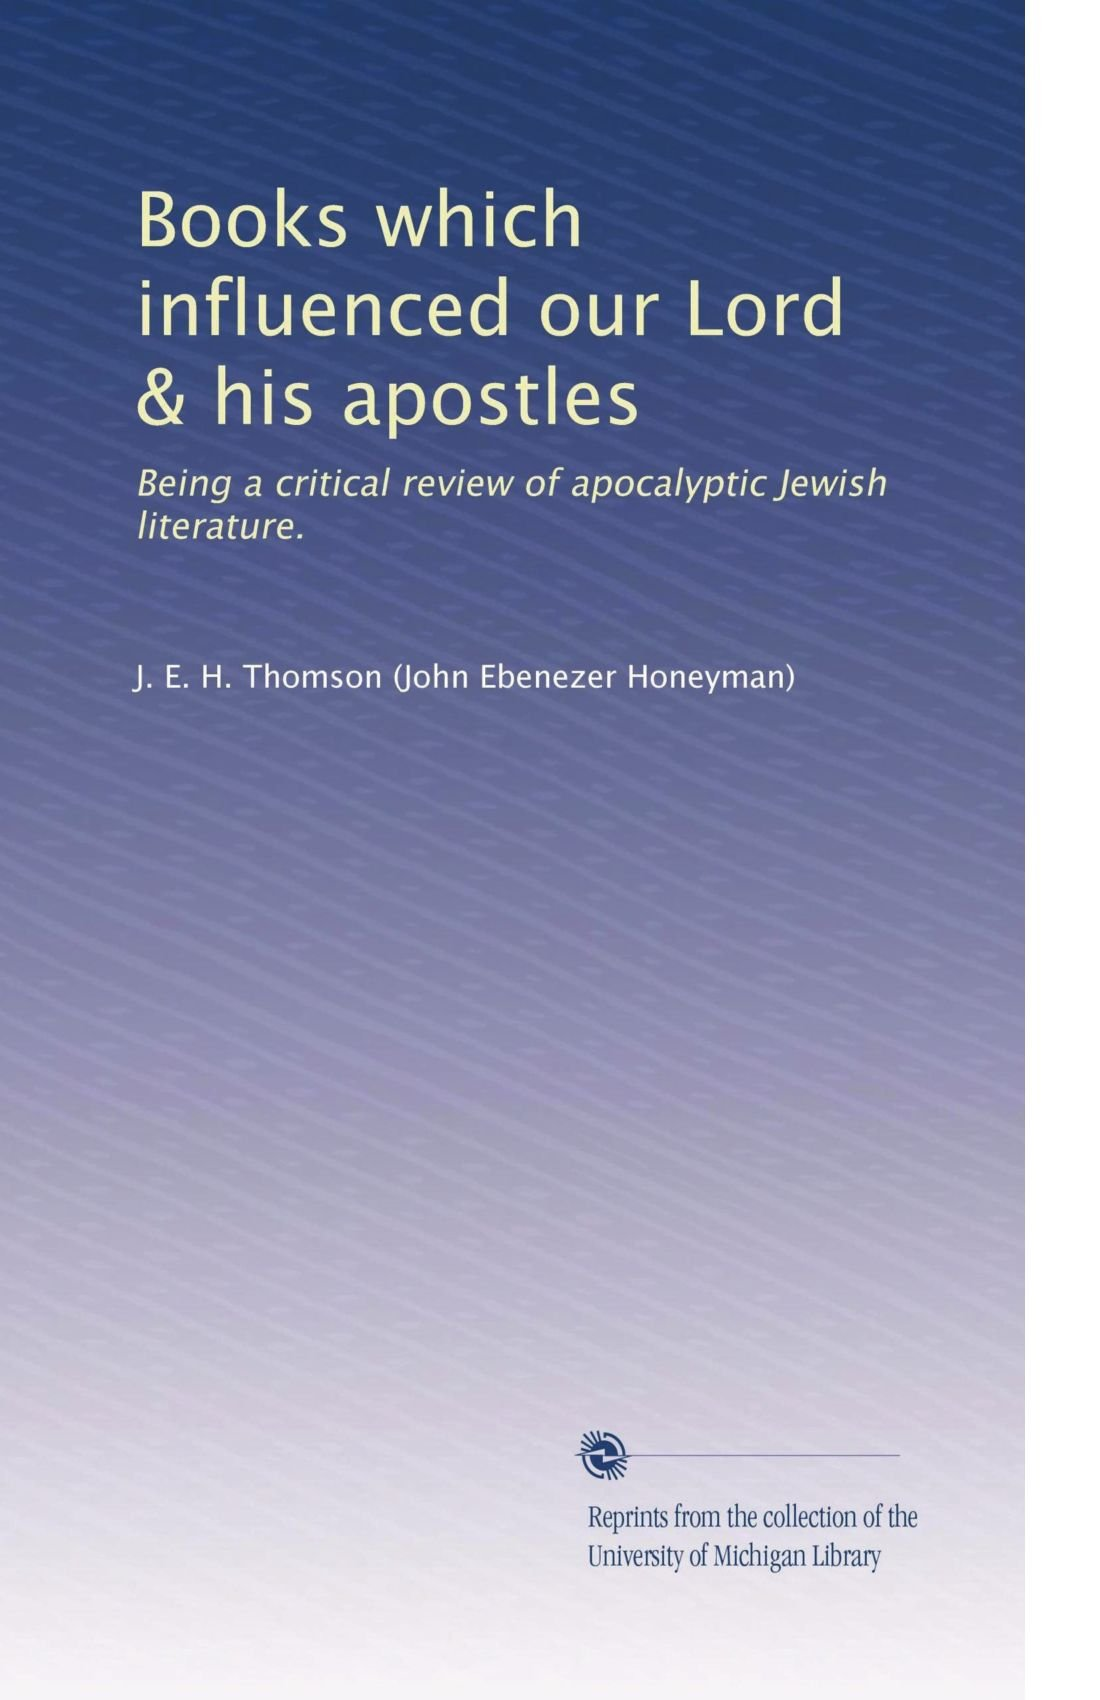 Books which influenced our Lord & his apostles: Being a critical review of apocalyptic Jewish literature. PDF